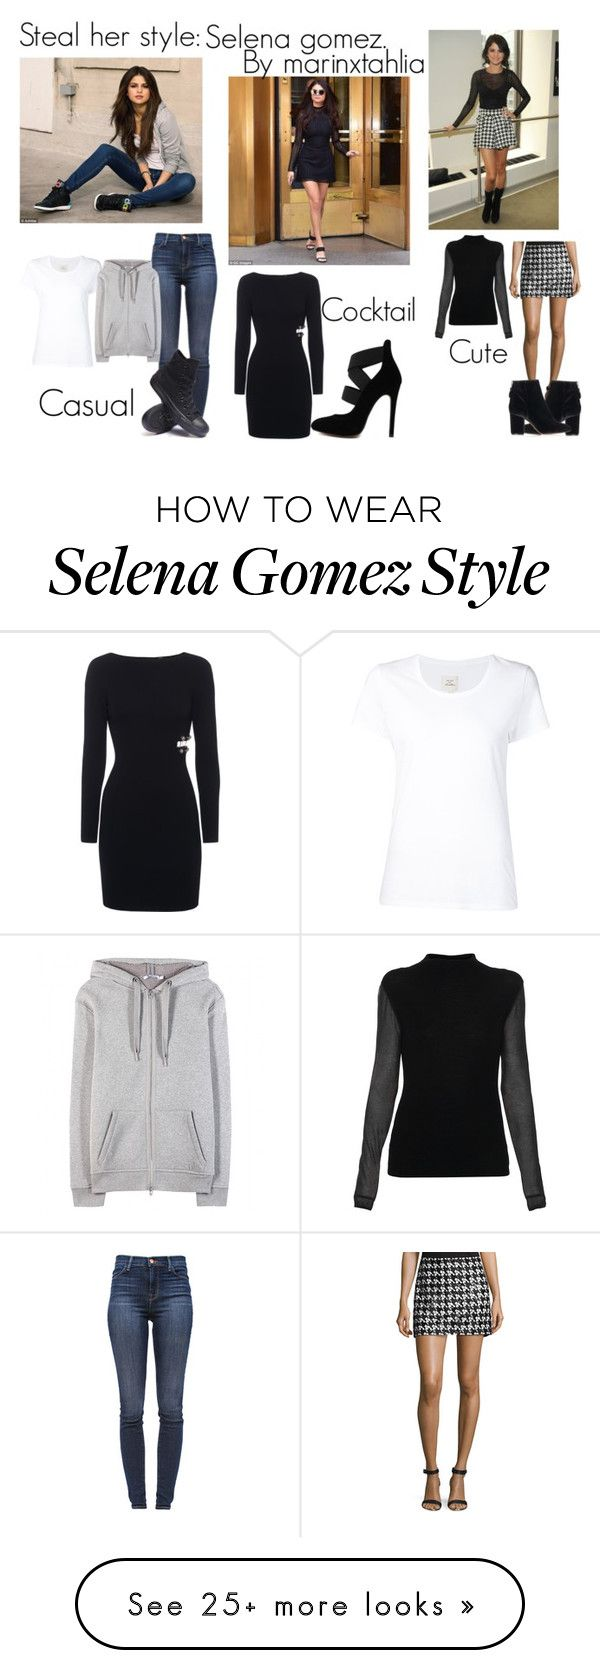 """Steal her style: selena gomez"" by marinxtahlia on Polyvore featuring adidas NEO, Max 'n Chester, J Brand, T By Alexander Wang, Converse, Rachel Zoe, Topshop, Elie Tahari and stealherstylemarinxtahlia"